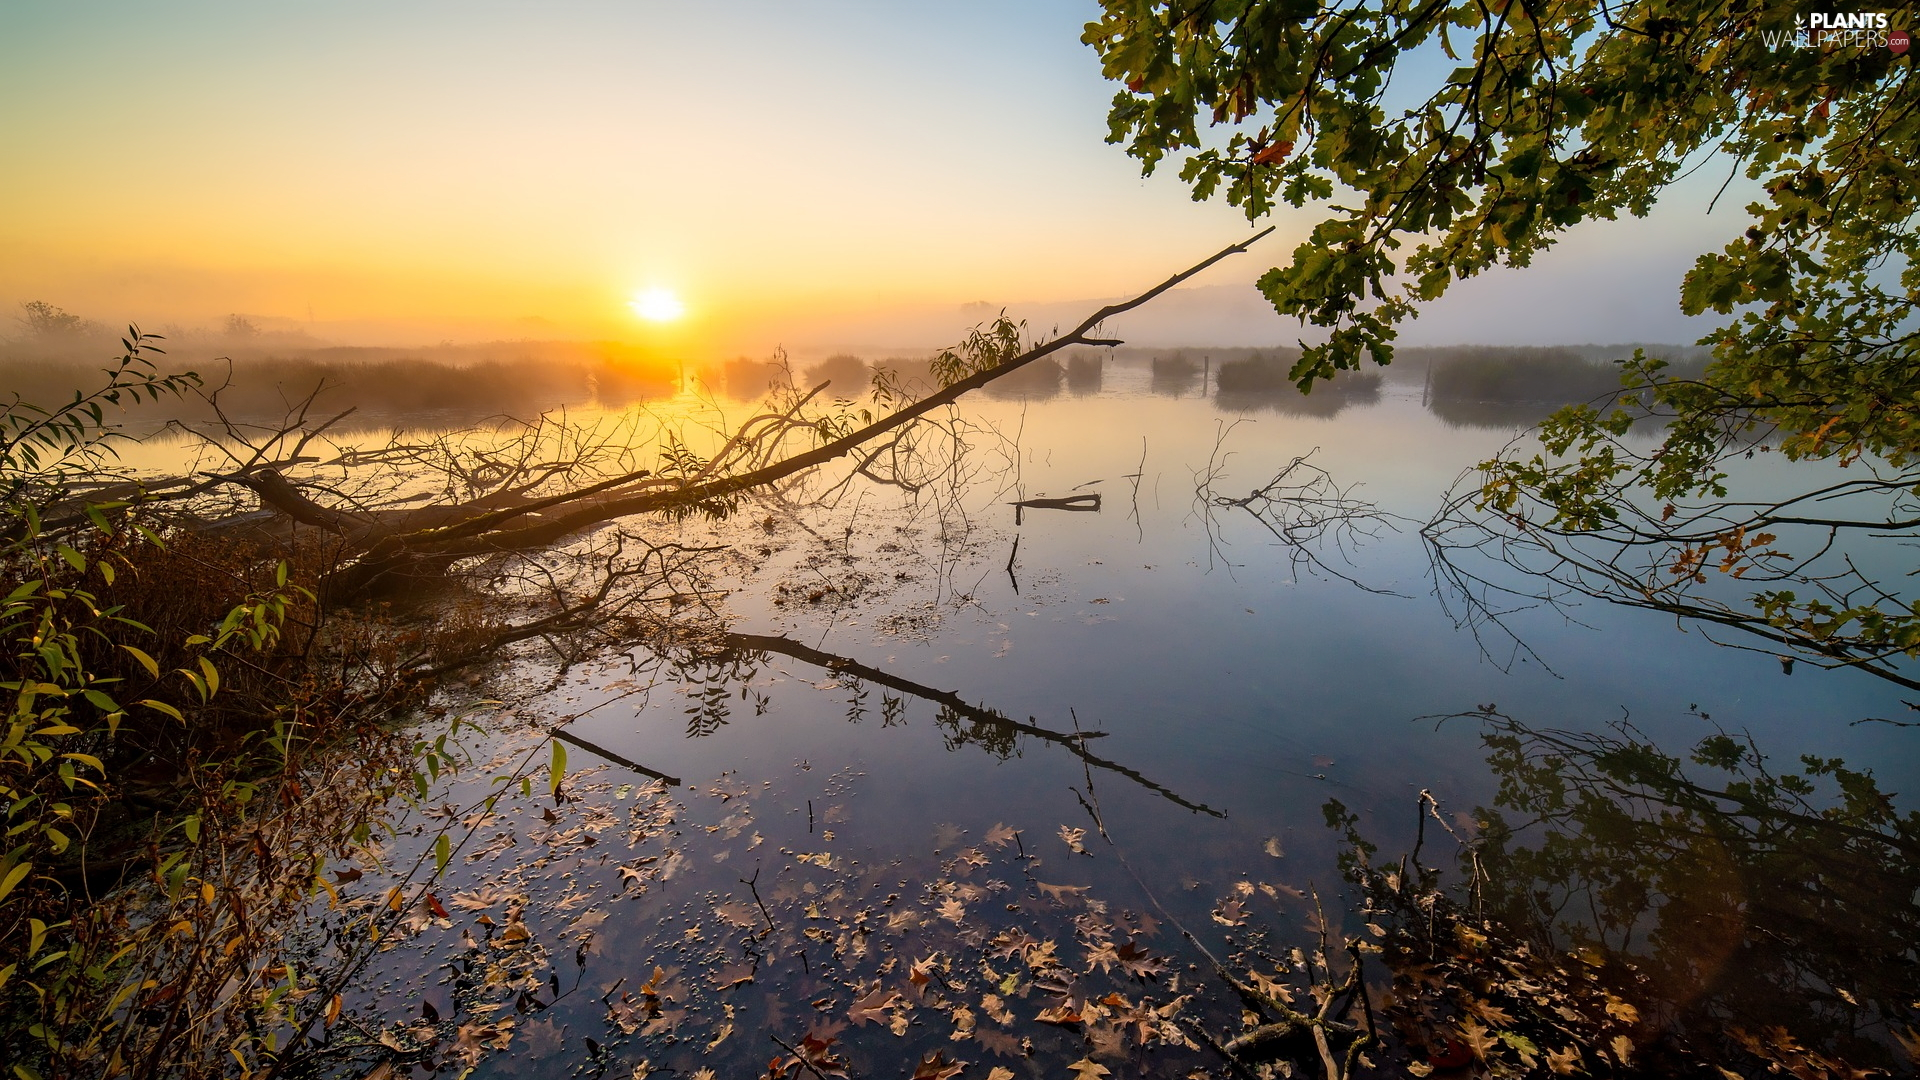 trees, branch pics, Fog, lake, Sunrise